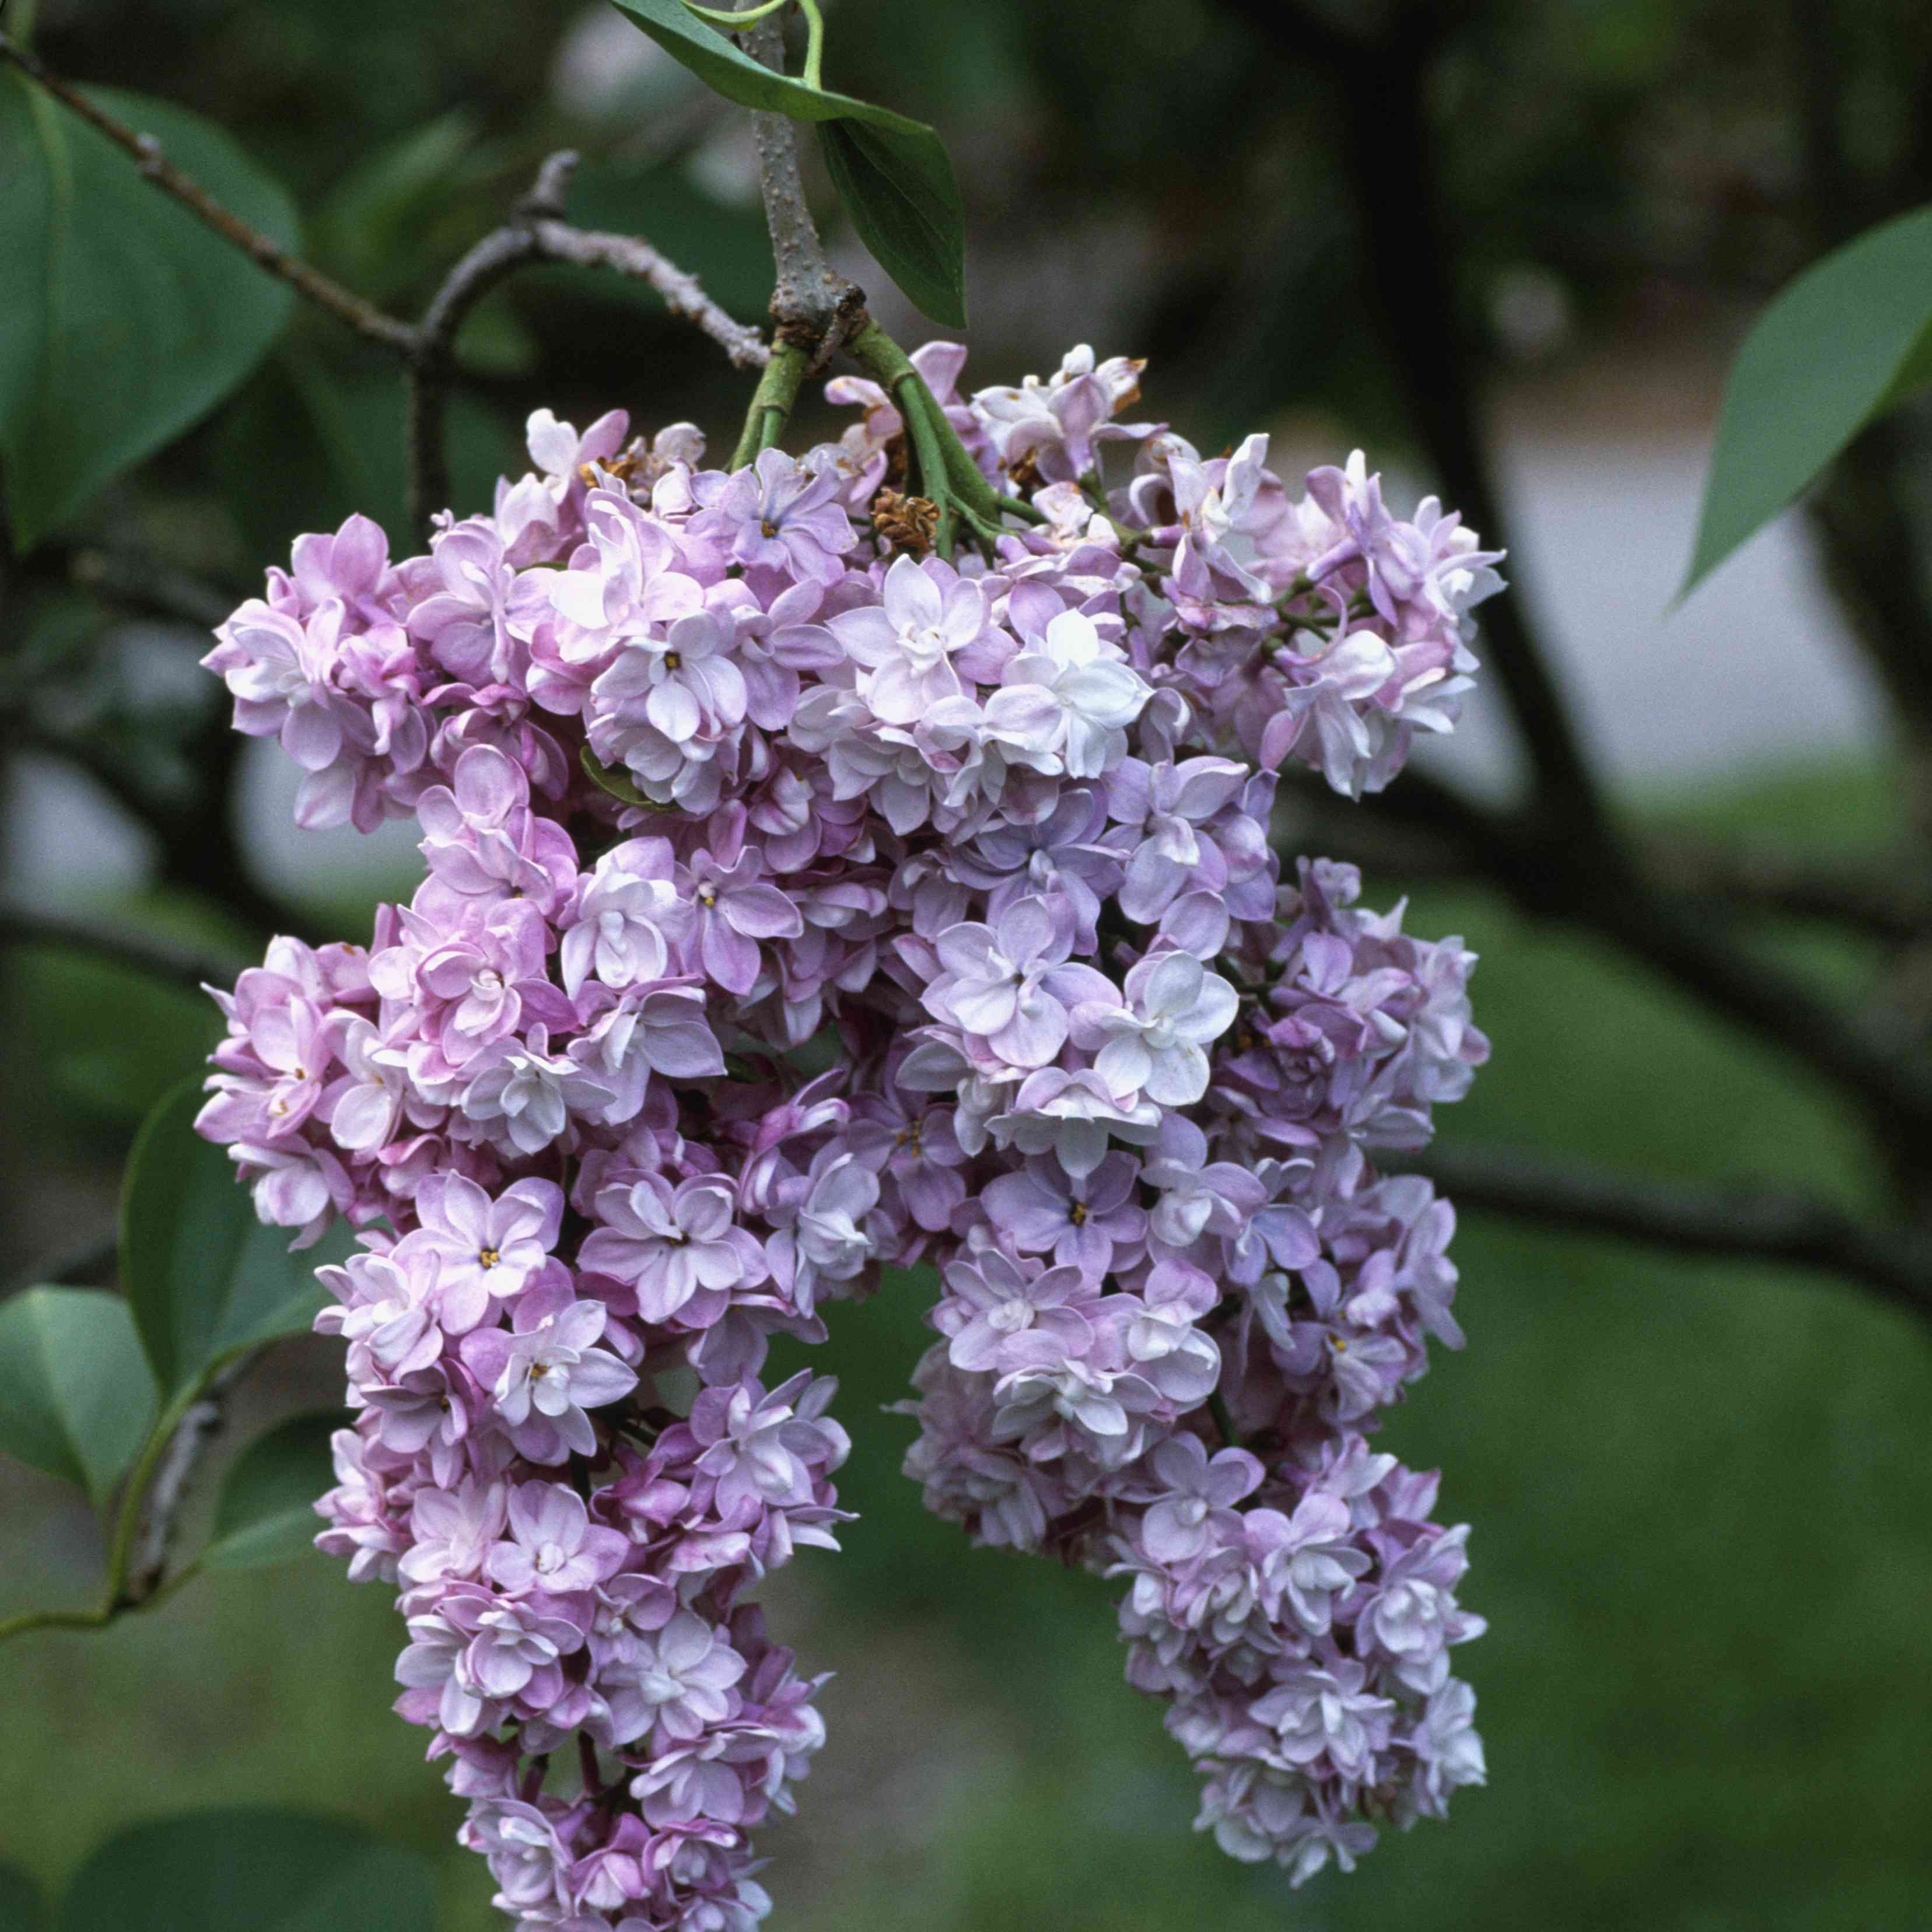 The Paul Thirion lilac with purple flowers